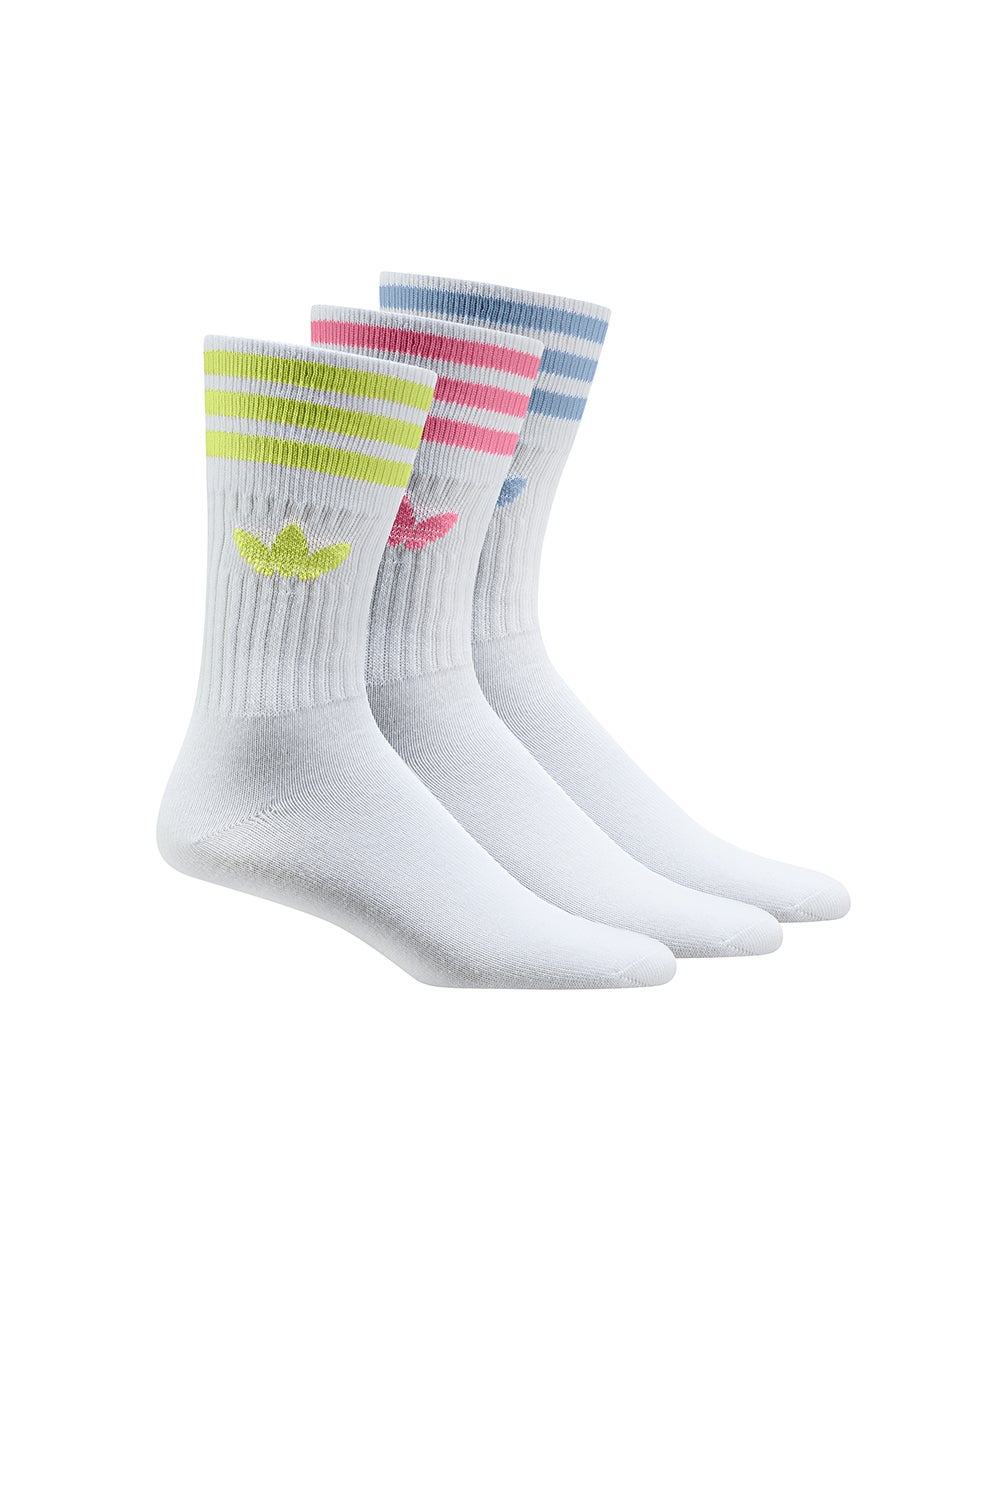 adidas Crew 3 pack Socks White/Pulse Yellow/Rose Tone/Ambient Sky